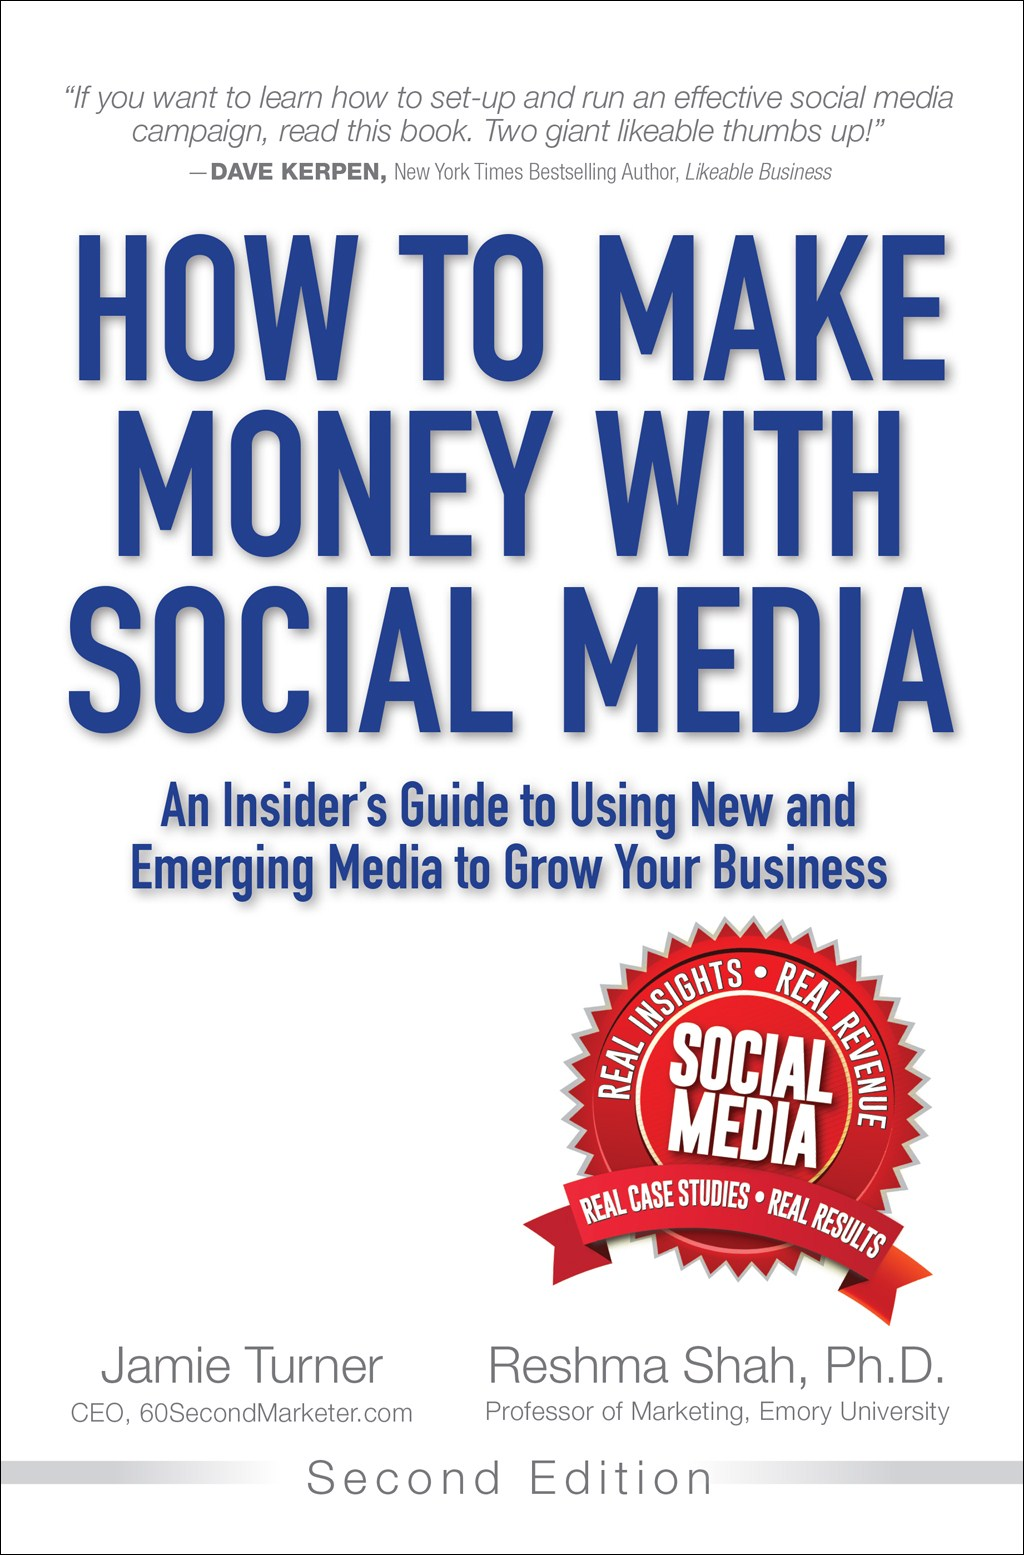 How to Make Money with Social Media: An Insider's Guide to Using New and Emerging Media to Grow Your Business, 2nd Edition